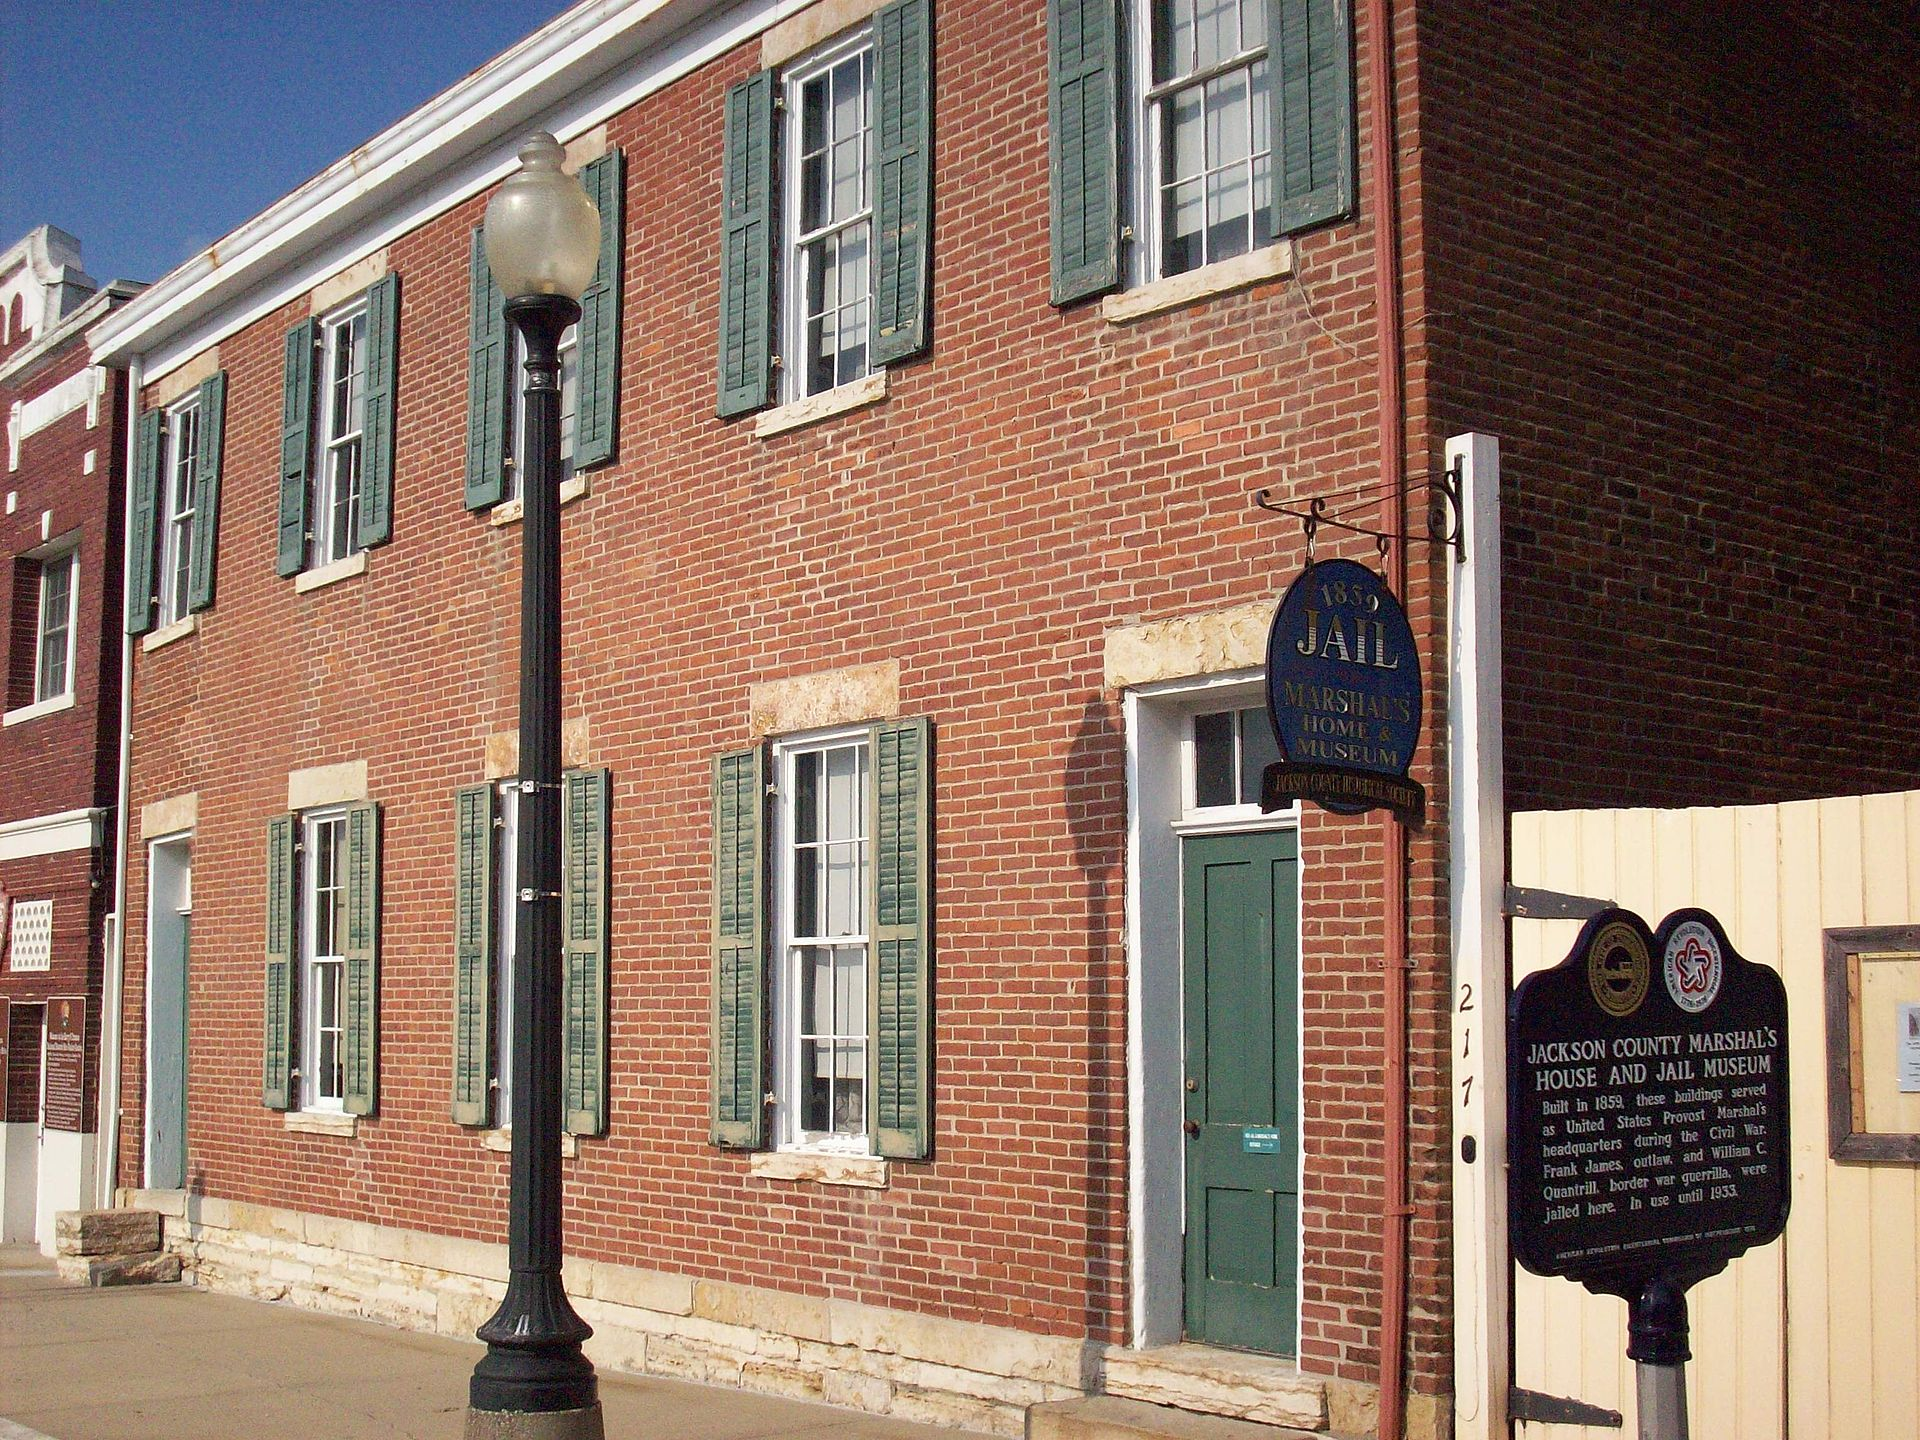 The Jackson County Jail and Marshal's House was erected in 1859 and is now a museum operated by the Jackson County Historical Society.